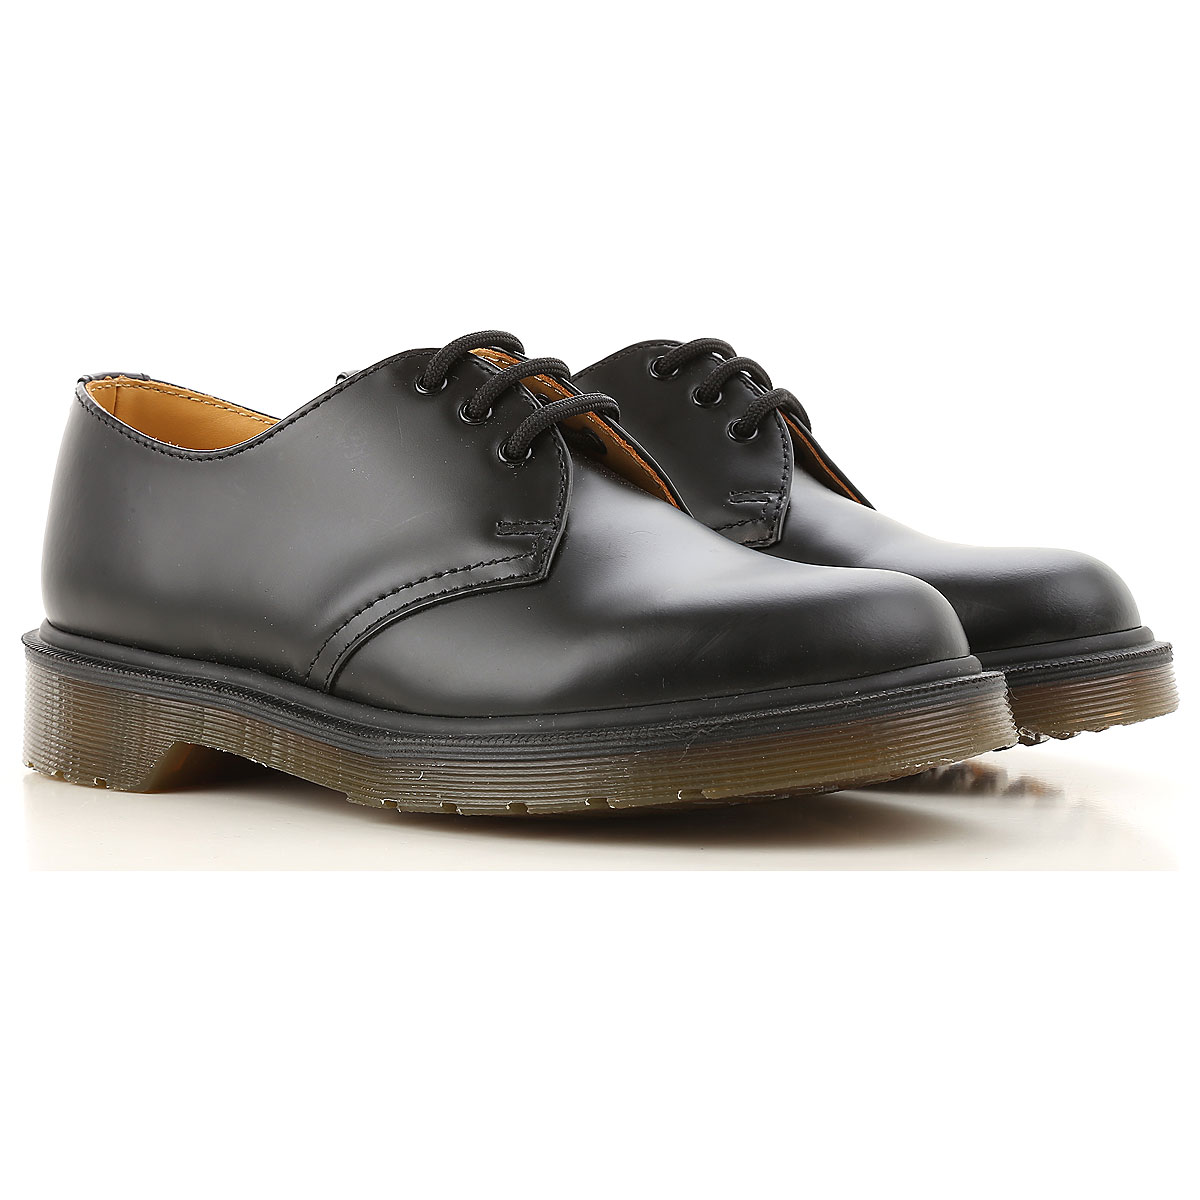 Image of Dr. Martens Oxford Lace up Shoes for Women On Sale, Black, Leather, 2017, 6 9